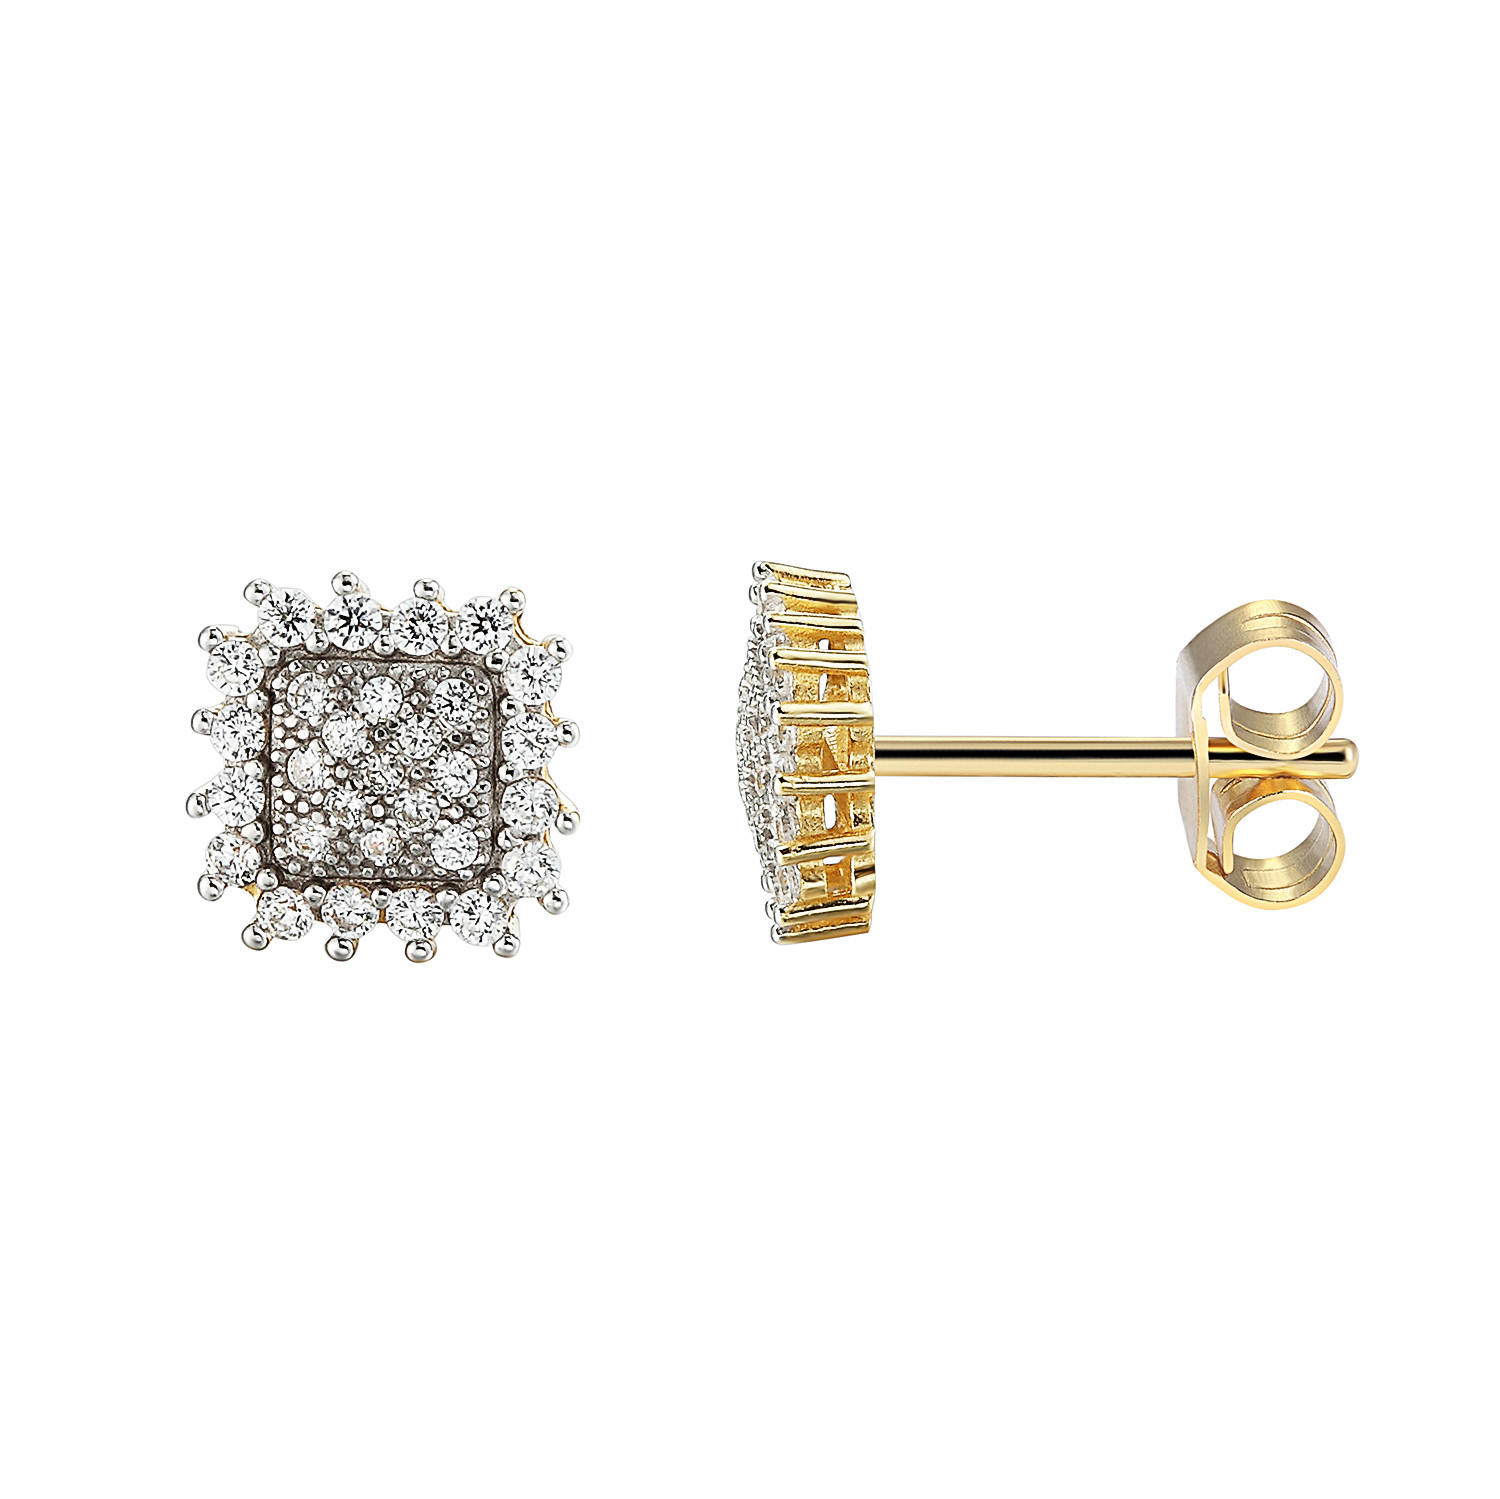 Image of Sterling Silver 14k Gold Finish Cluster Prong Solitaire Lab Diamonds Iced Out Earrings